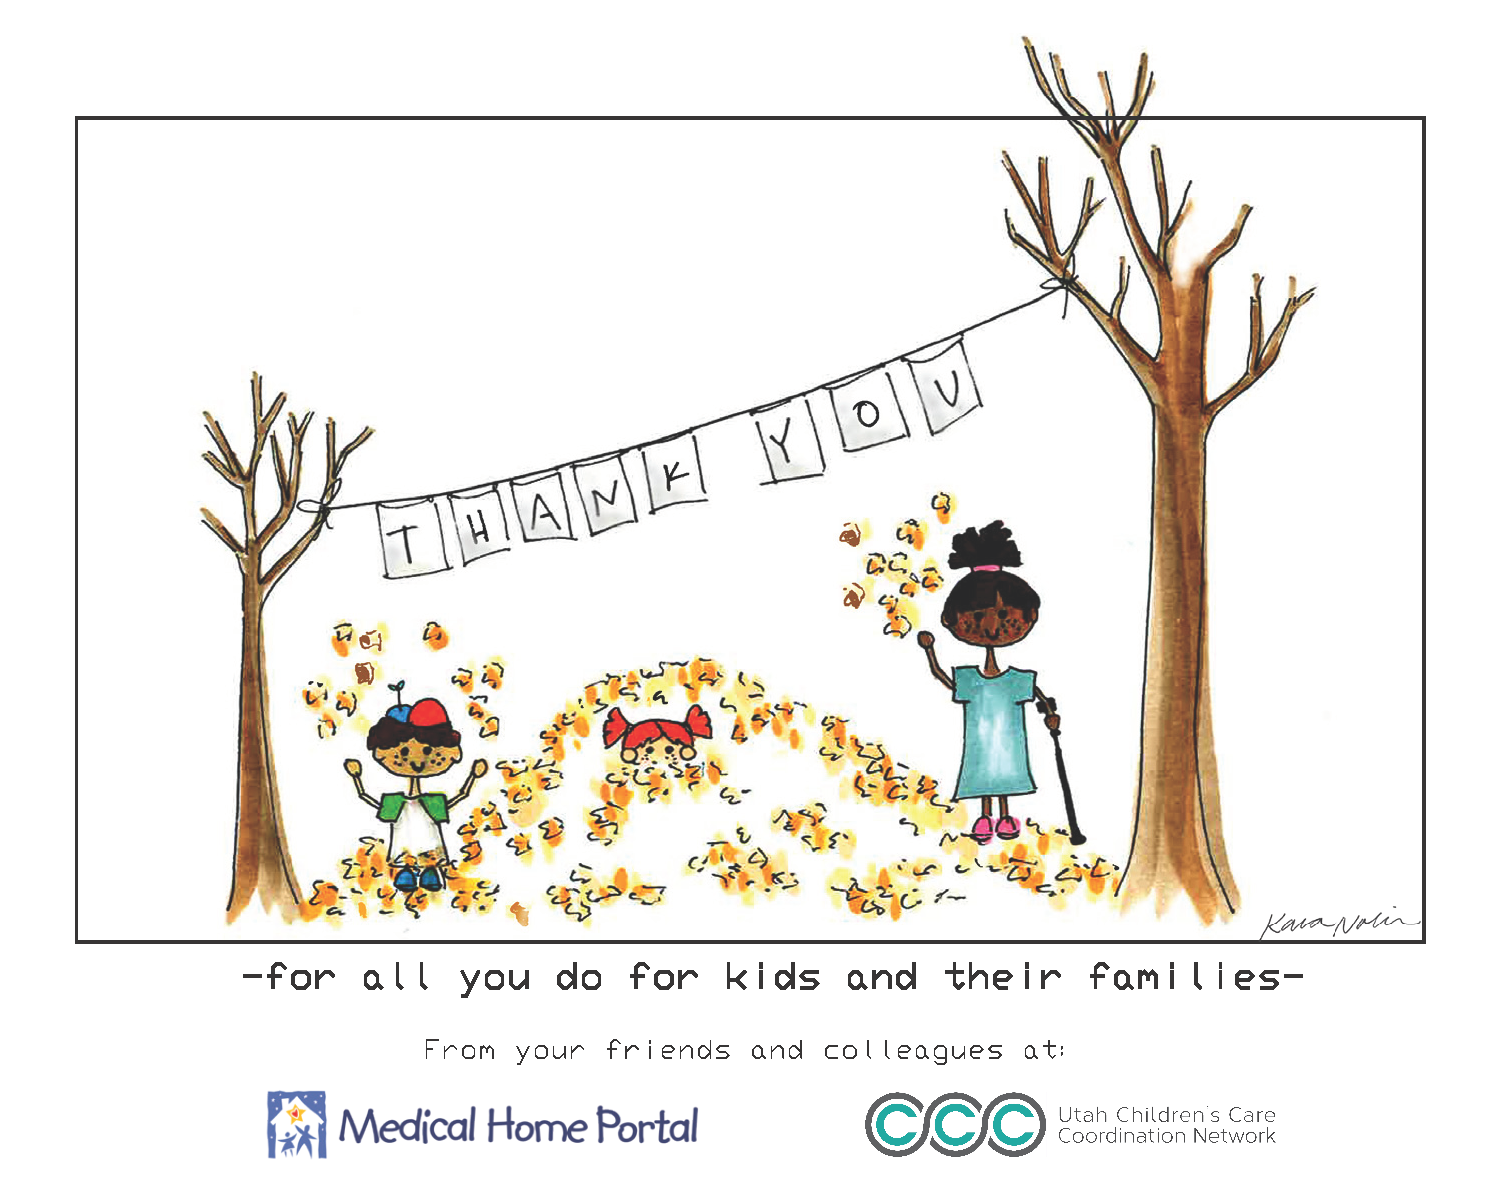 Thank you for all you do for children and families from your friends and colleagues at the Medical Home Portal and Utah Children's Care Coordination Network